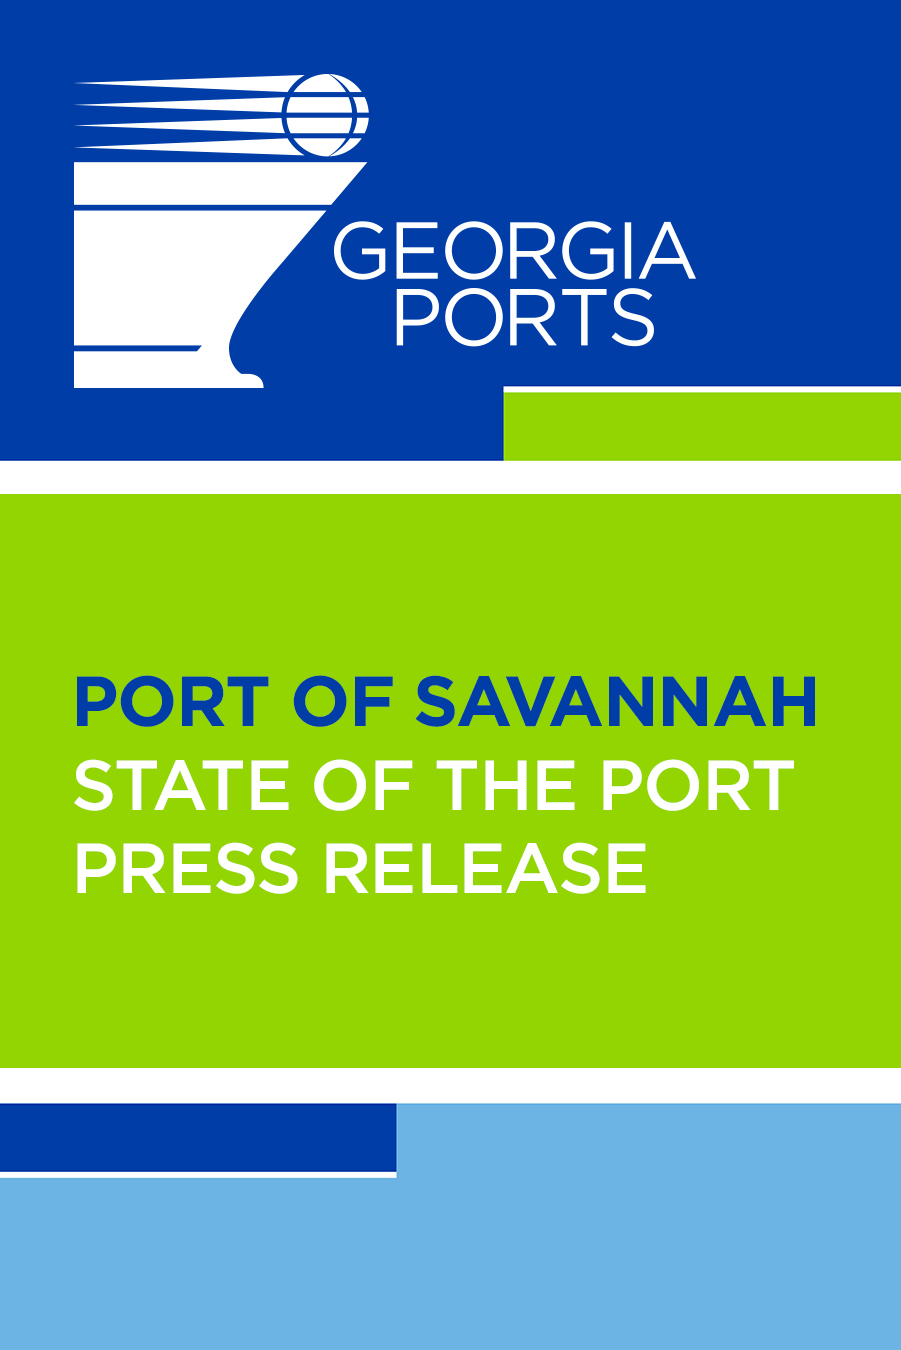 CLICK TO DOWNLOAD   2019 Georgia Ports State of the Port Press Release (PDF - 842MB)